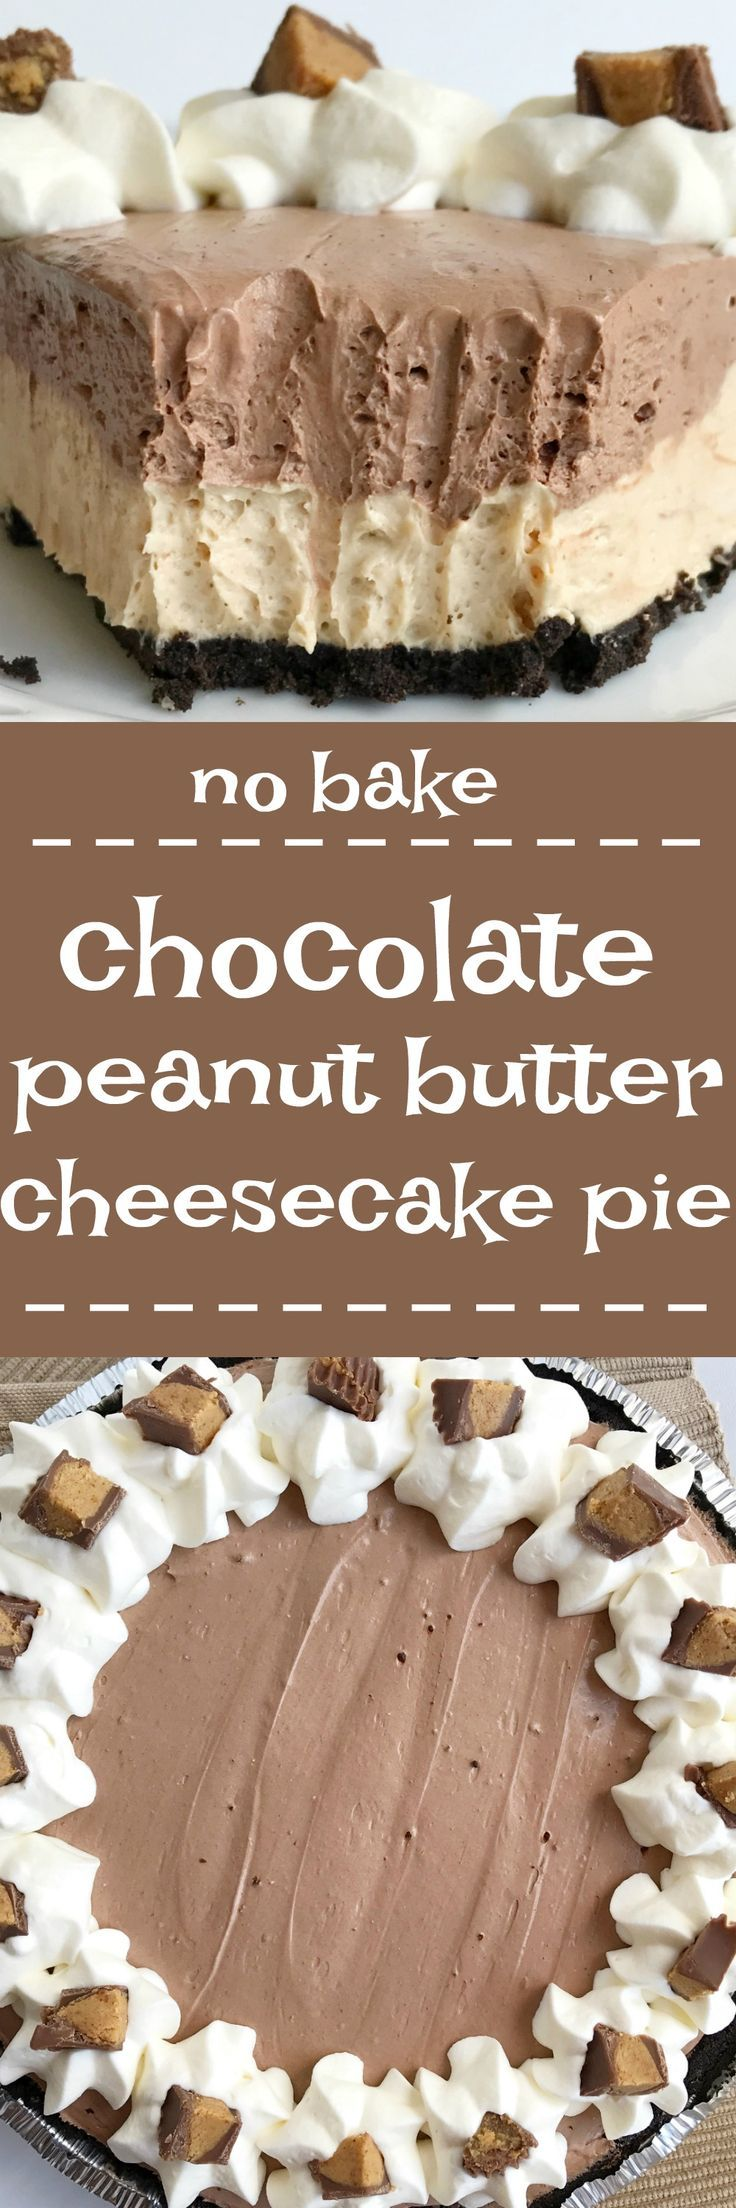 You won't believe how easy this {no bake} chocolate peanut butter cheesecake pie is to make! Uses a premade Oreo crust, filled with a creamy peanut butter cheesecake, and then topped with a layer of creamy chocolate cheesecake. Only takes minutes to make